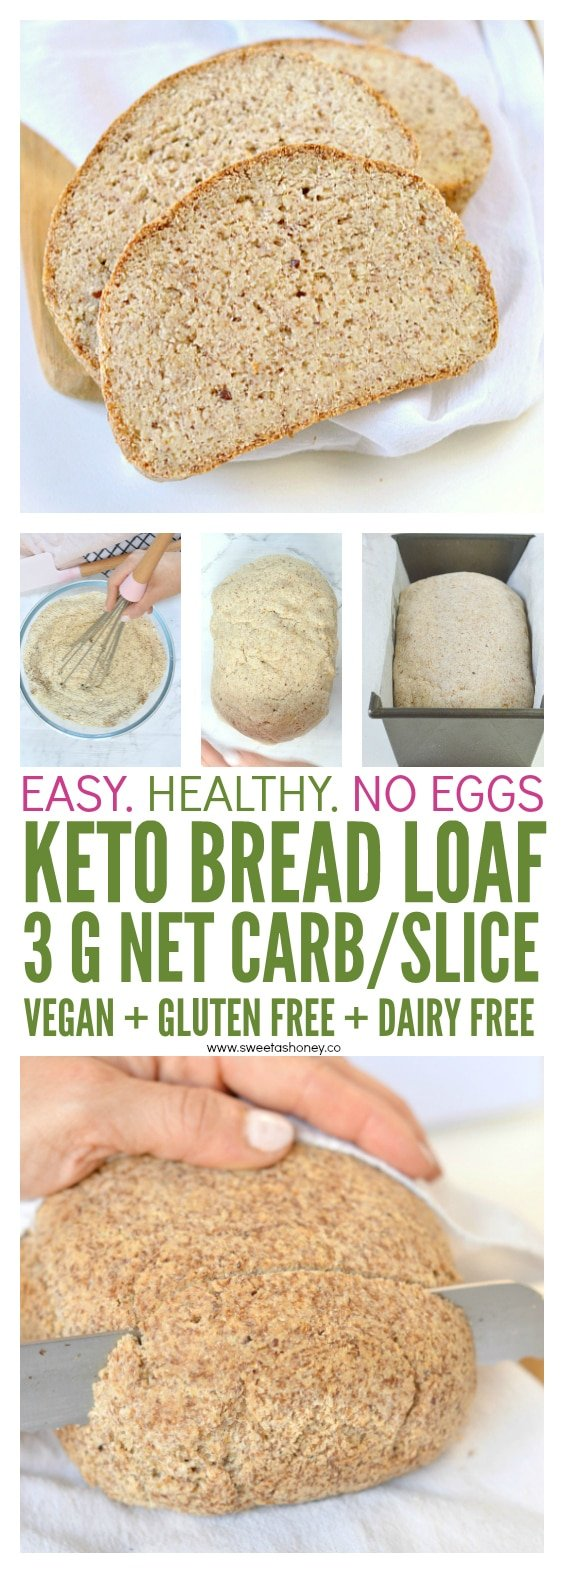 THE BEST KETO BREAD LOAF NO EGGS